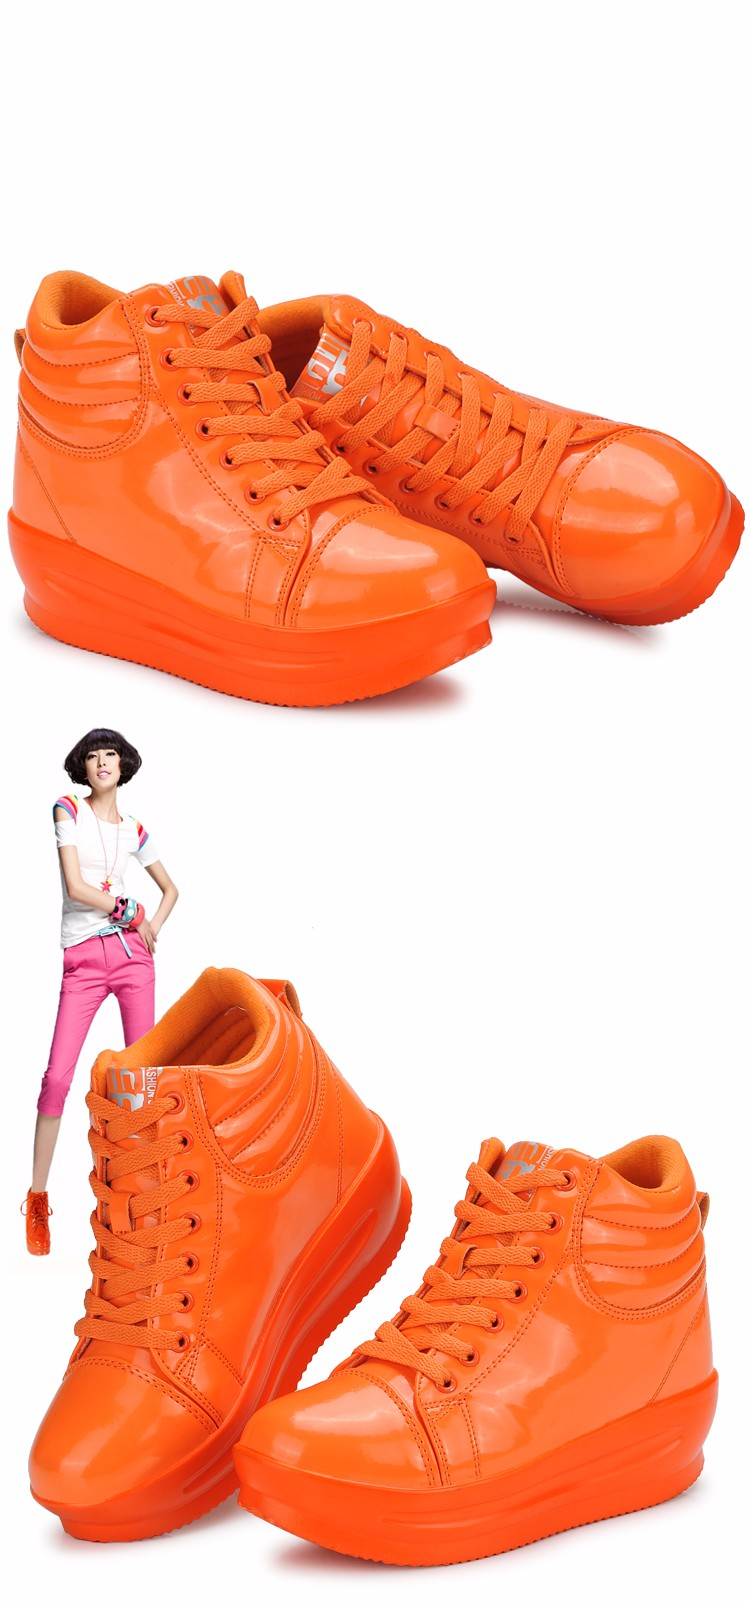 KUYUPP 2016 Fashion Hide Heel Women Casual Shoes Breathable Flat Platform Casual Women Shoes Patent Leather High Top Shoes YD105 (21)